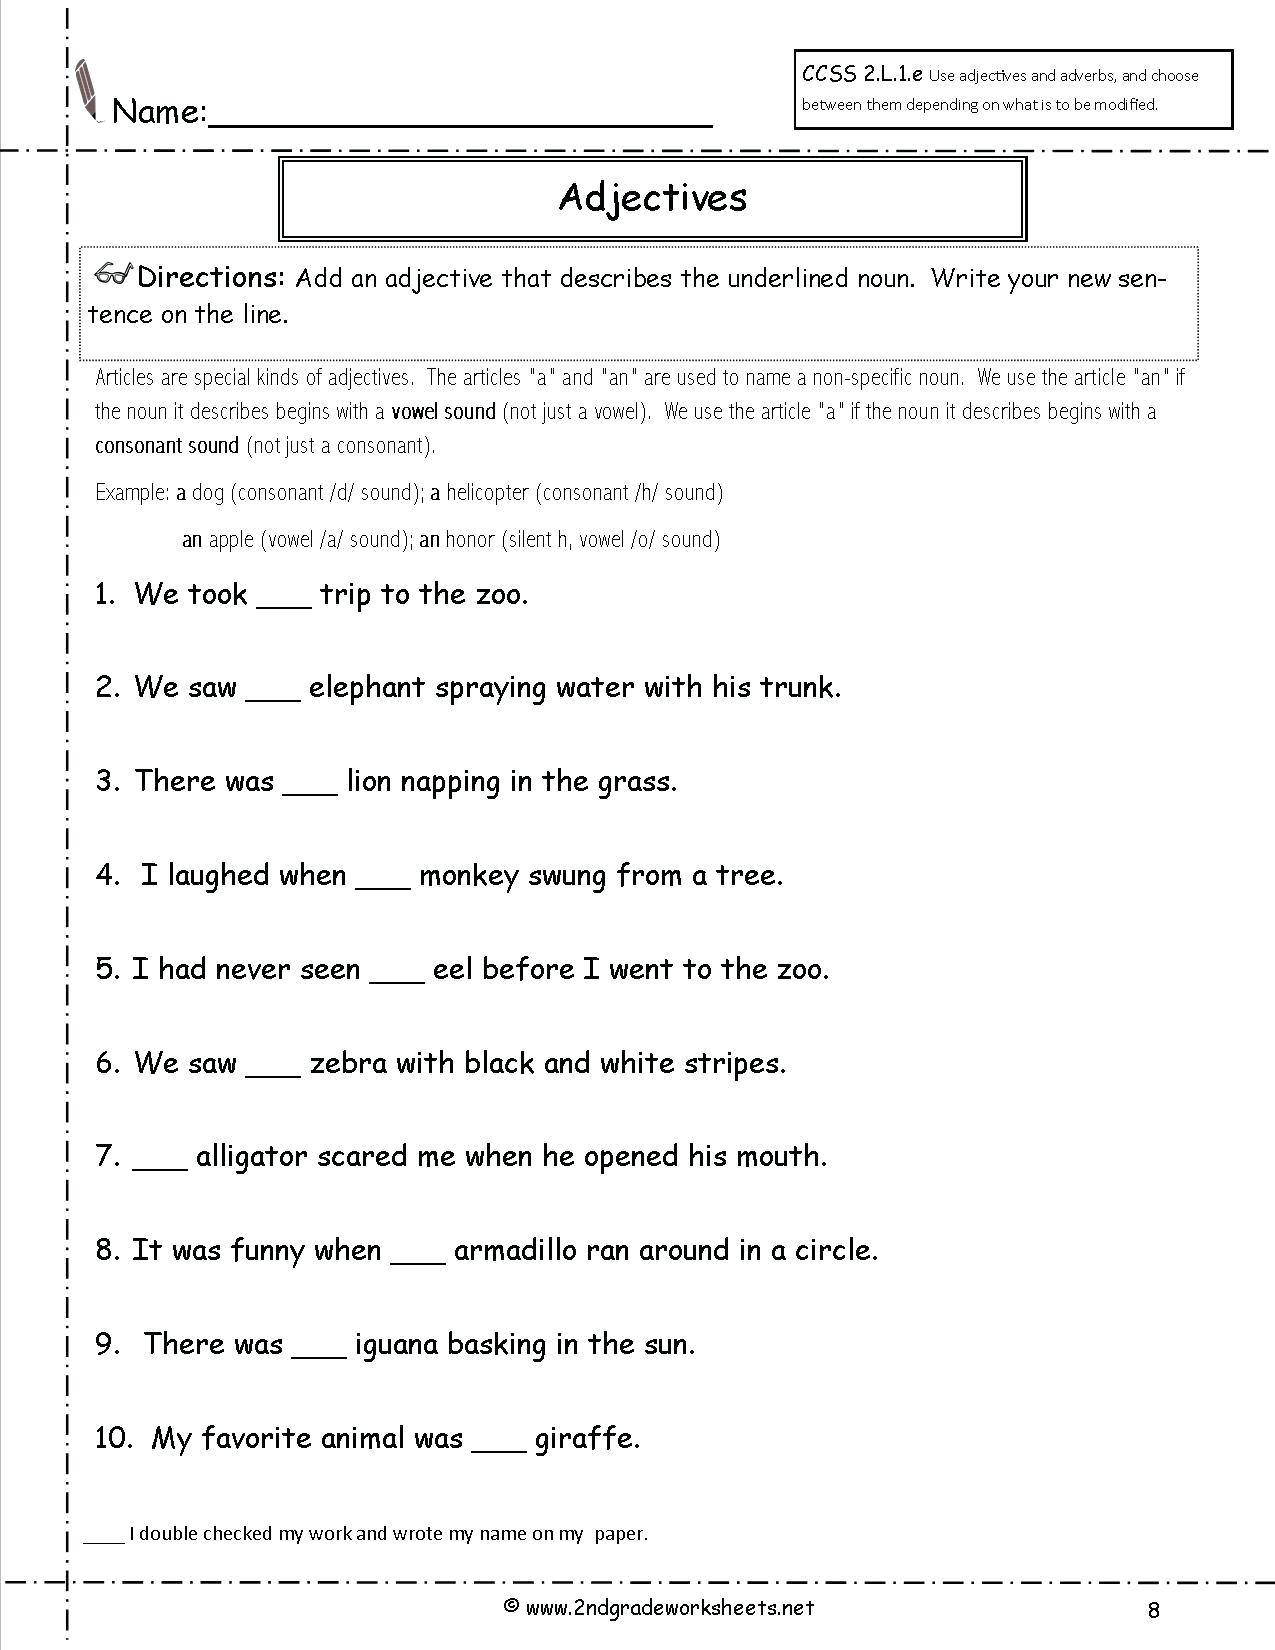 5th Grade Science Worksheets Printable Free